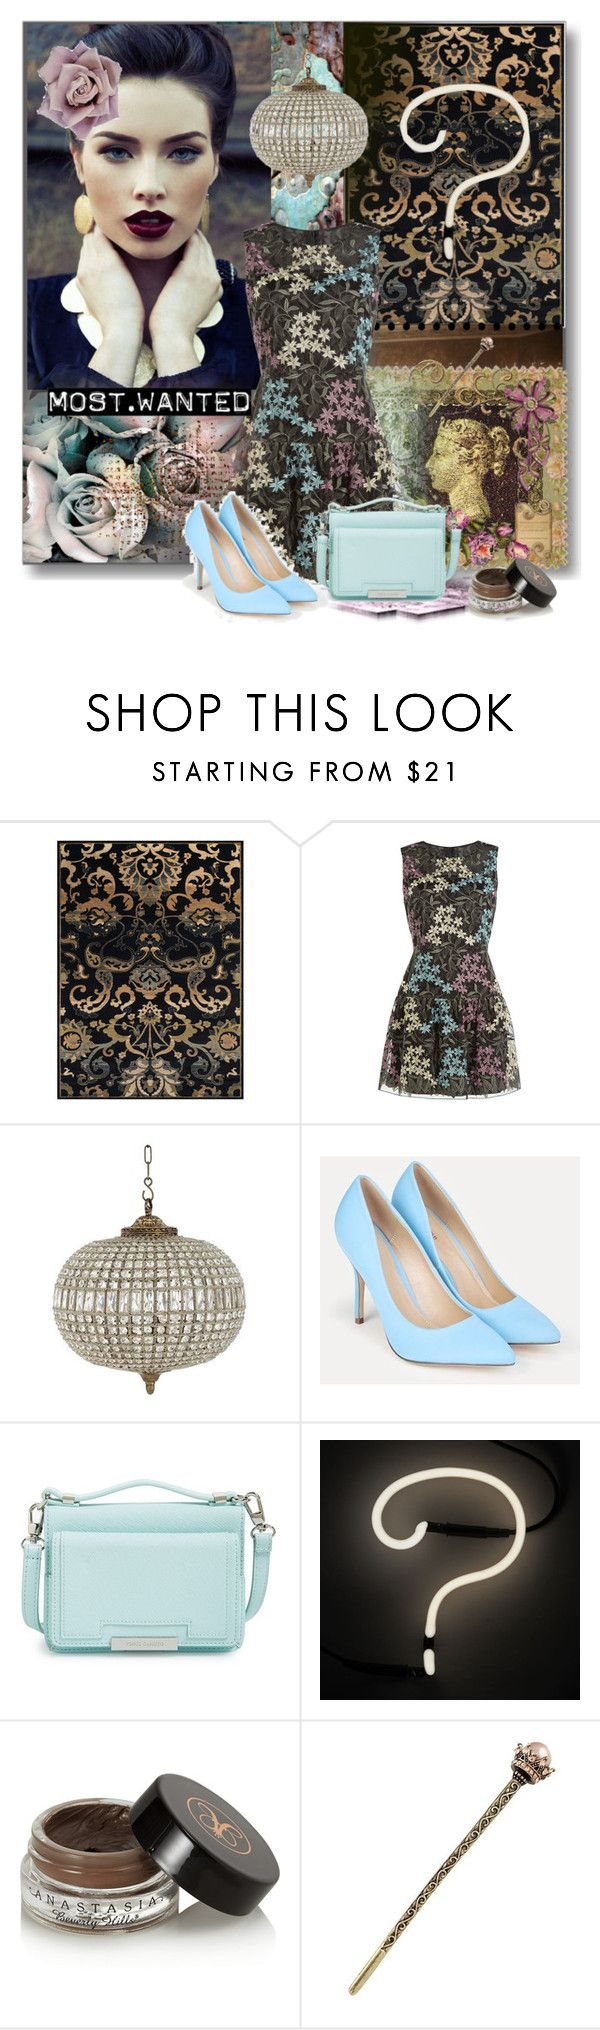 """""""Most Wanted............"""" by nz-carla ❤ liked on Polyvore featuring BD Fine, Revé, Anna Sui, Eichholtz, JustFab, Vince Camuto, Seletti and Anastasia Beverly Hills"""